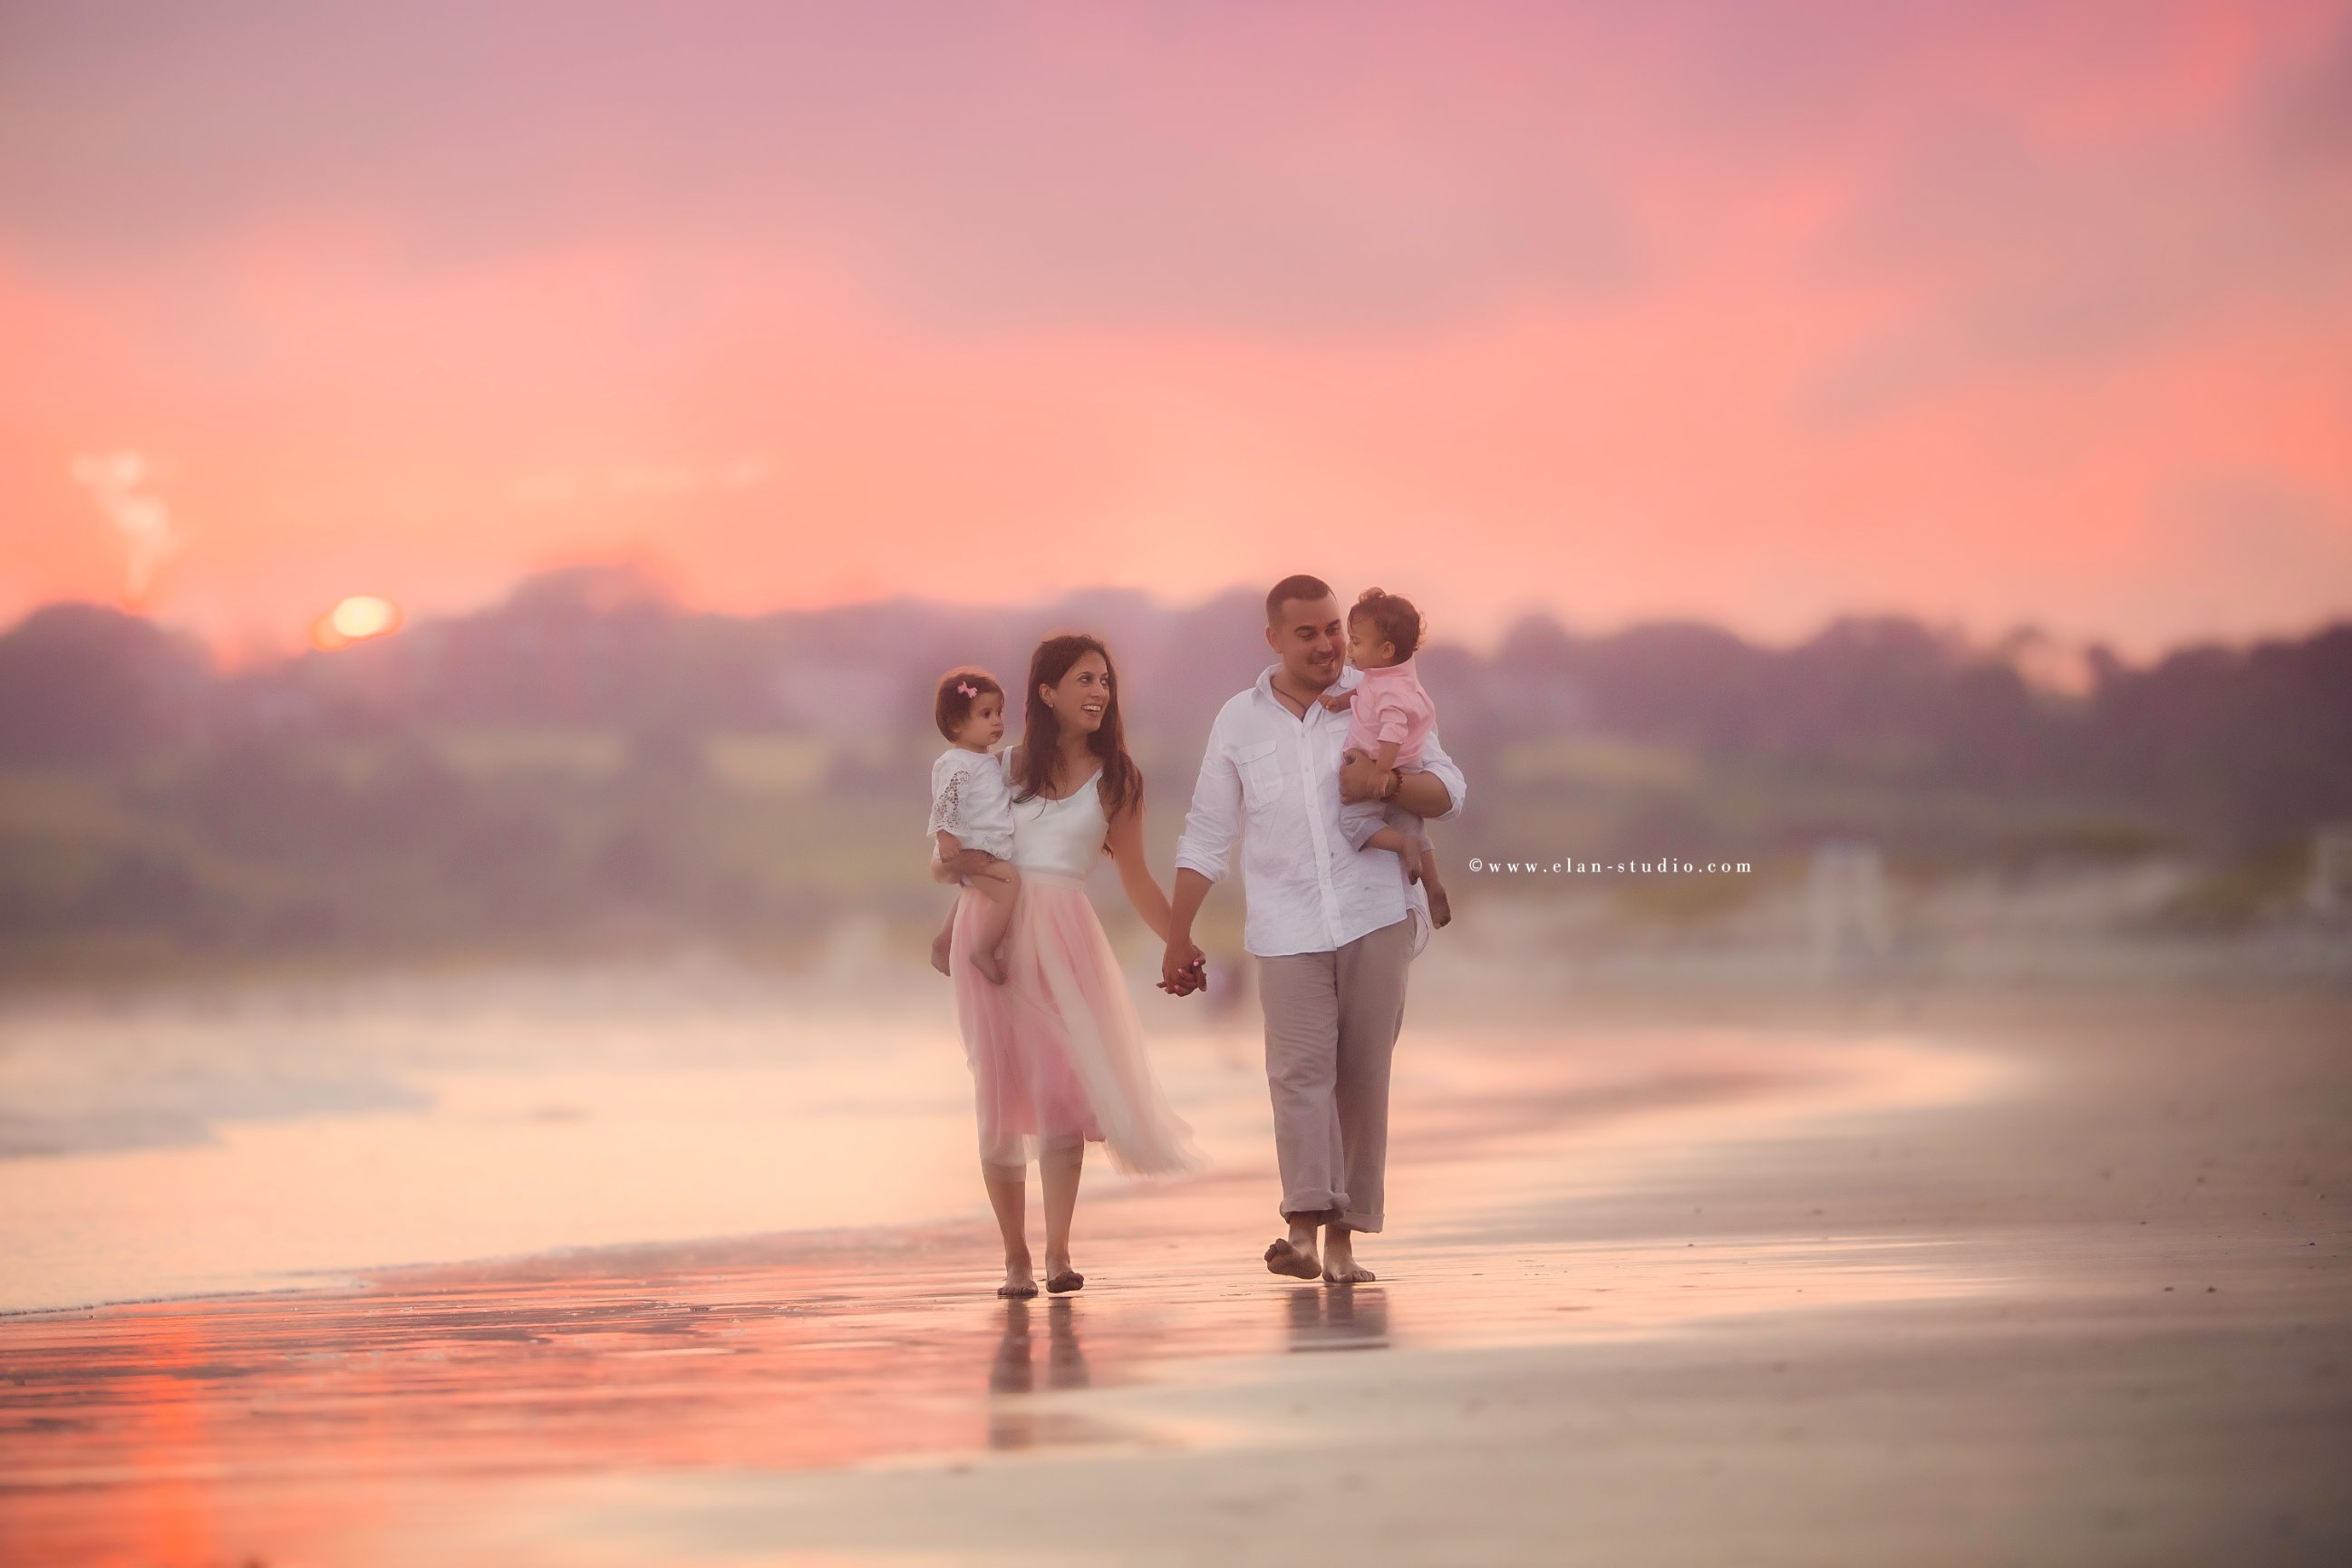 dreamy pink hued image of family walking on beach at sunset, by Elan Studio